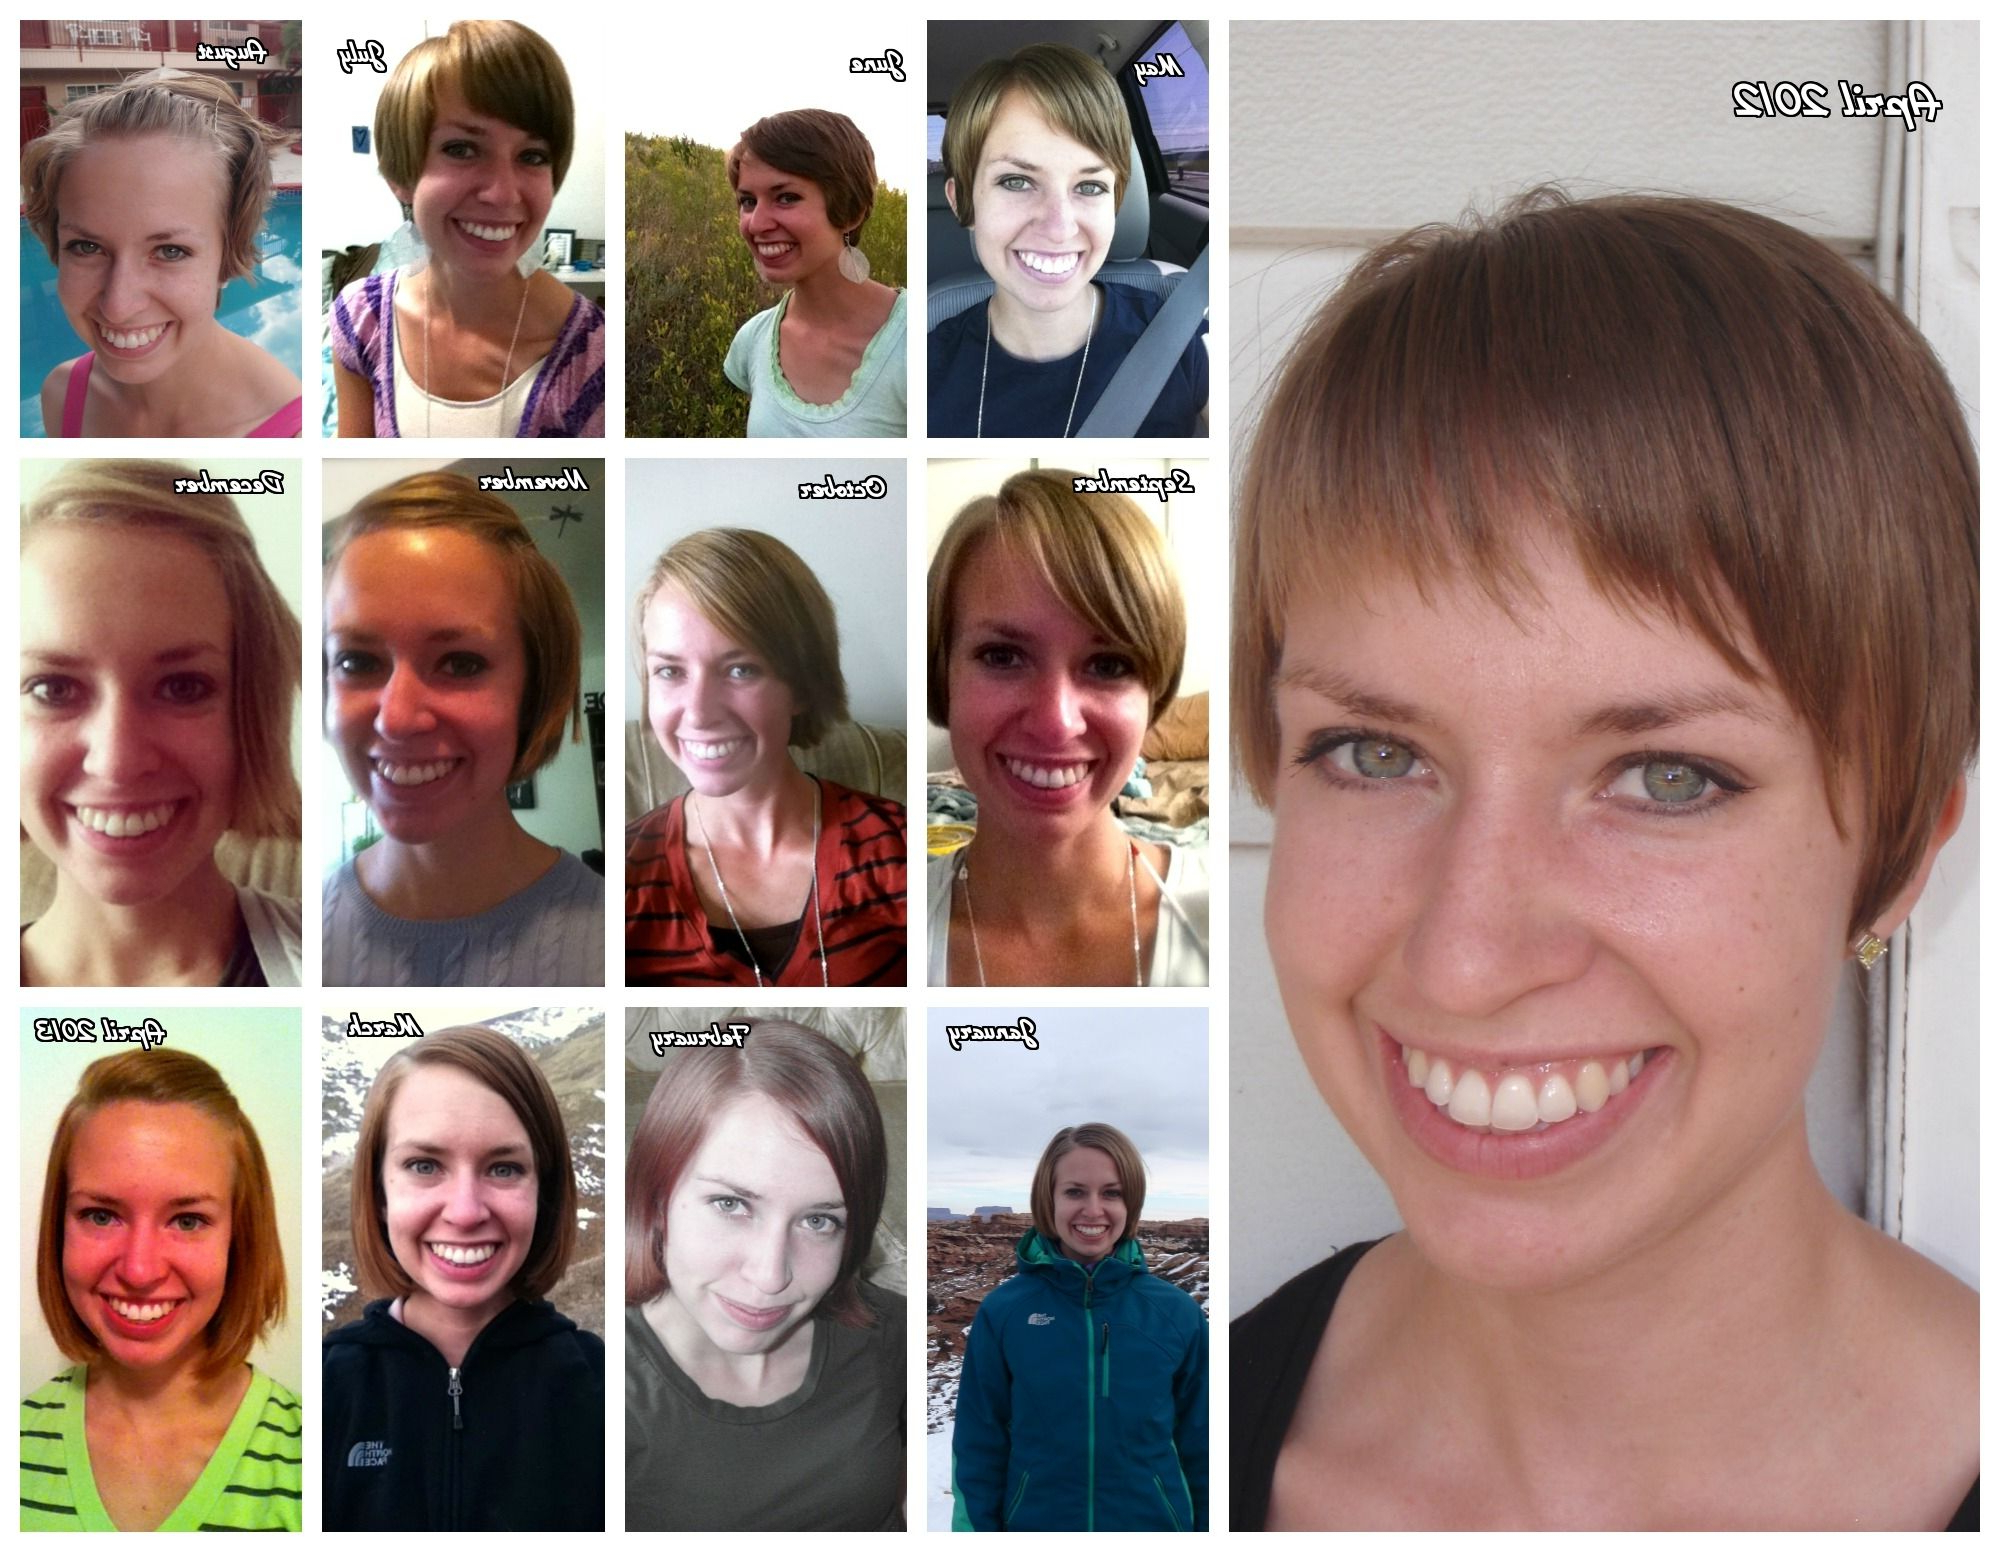 Growing Out Pixie Haircut Timeline | Hairtastic In 2018 | Pinterest Regarding Short Hairstyles For Growing Out A Pixie Cut (Gallery 8 of 25)